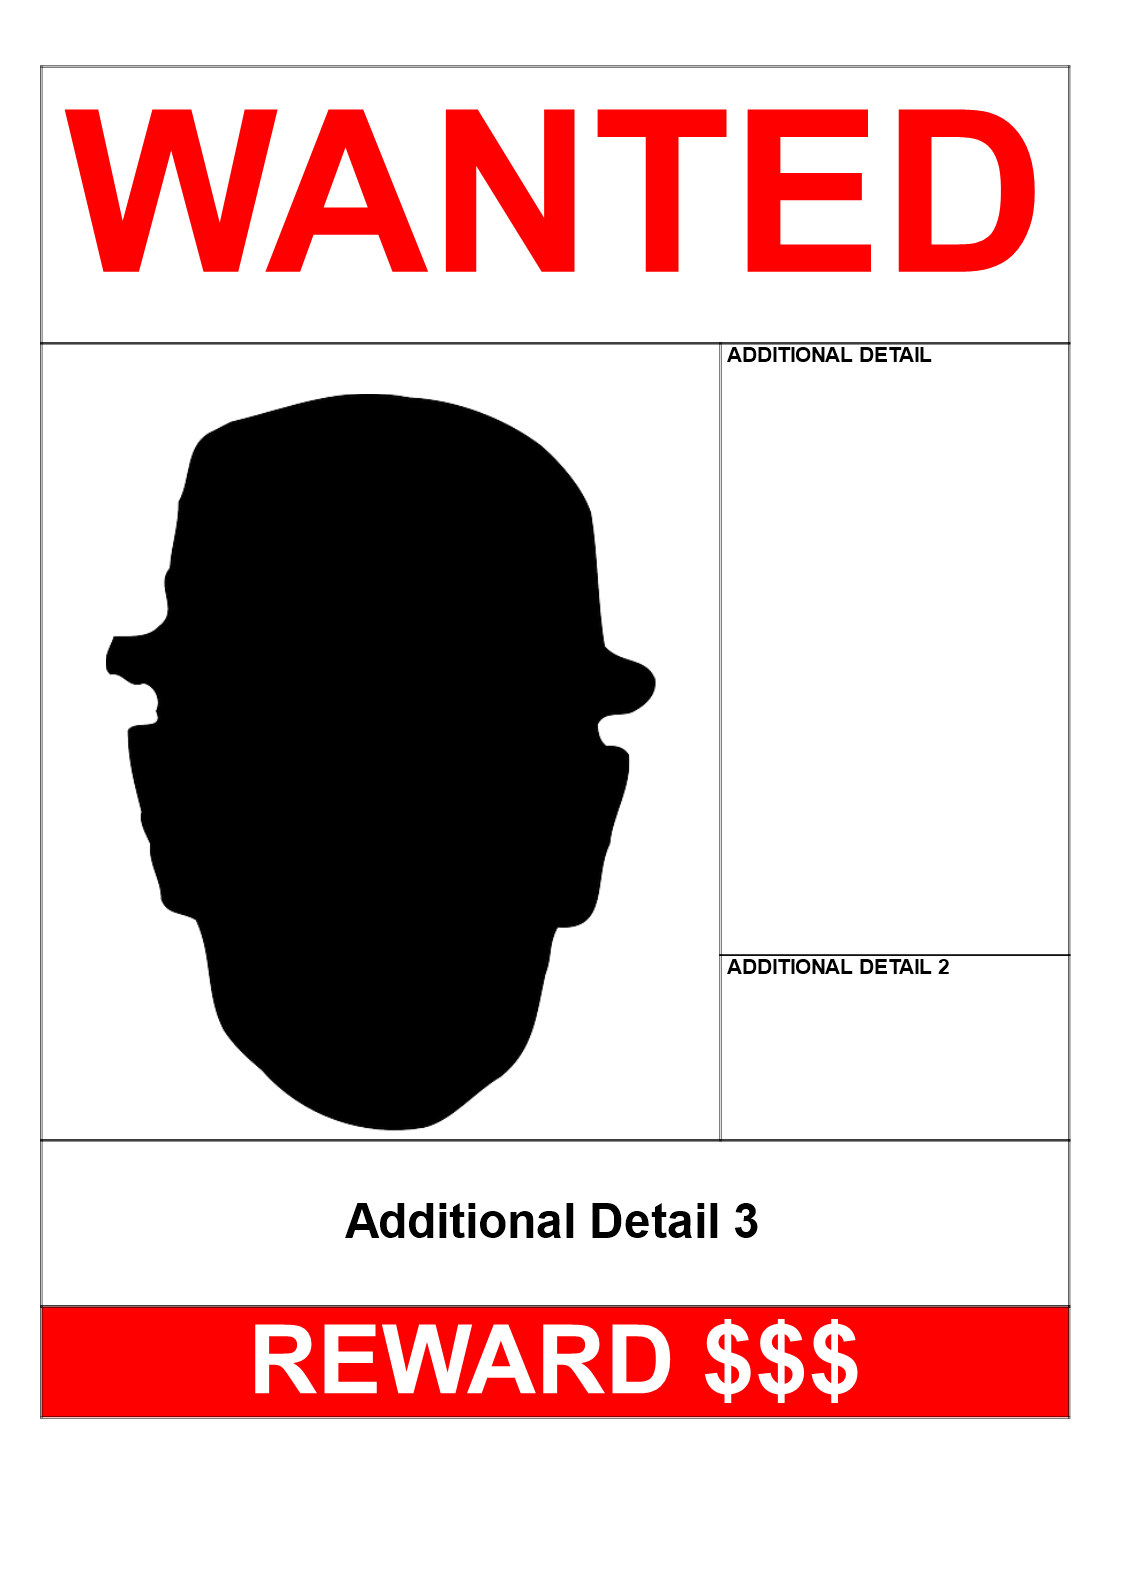 Wanted Poster A Size Design  Download This Wanted Poster A Size